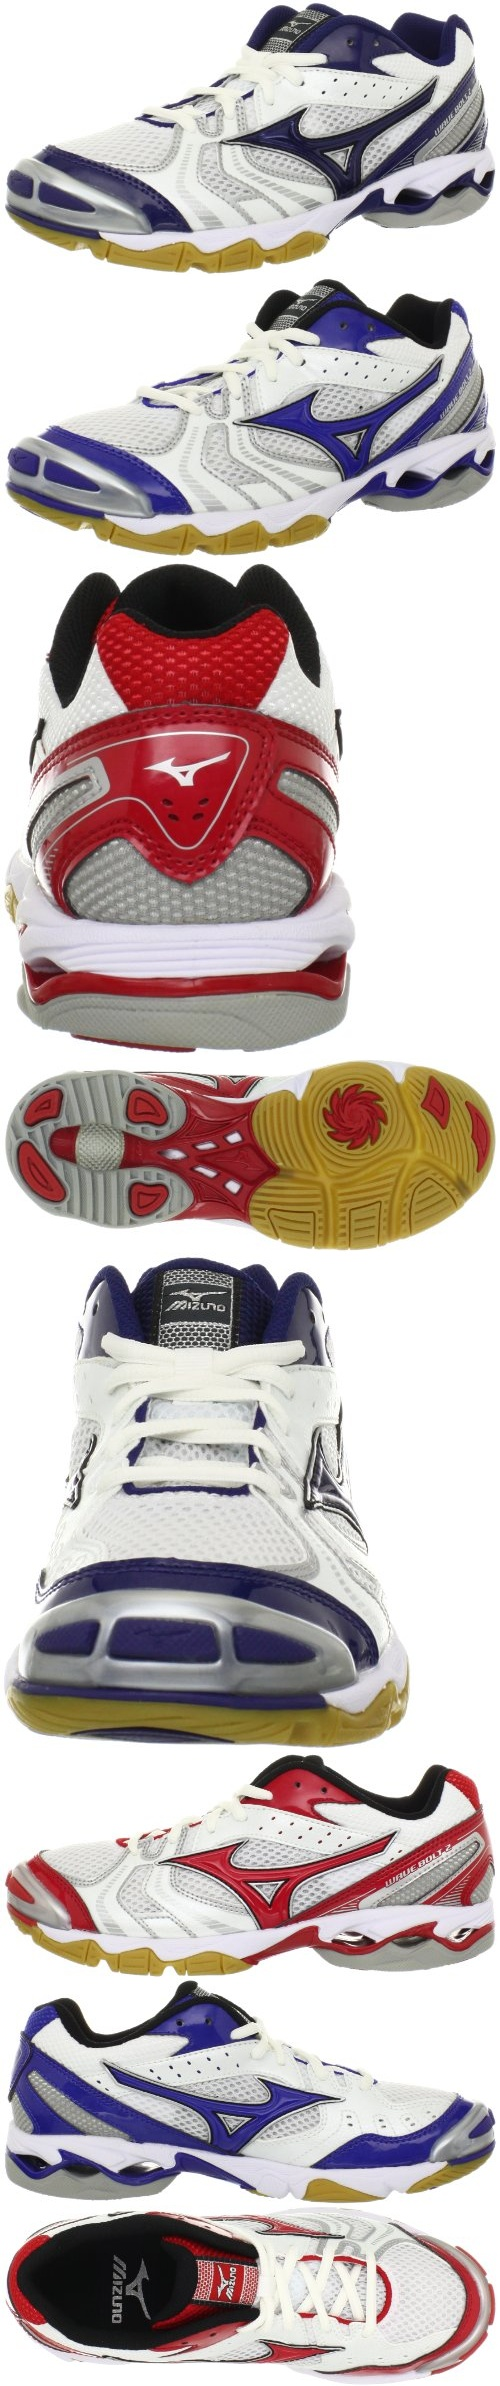 Mizuno Women's Wave Bolt 2 Volleyball shoes. I have the blue ones.